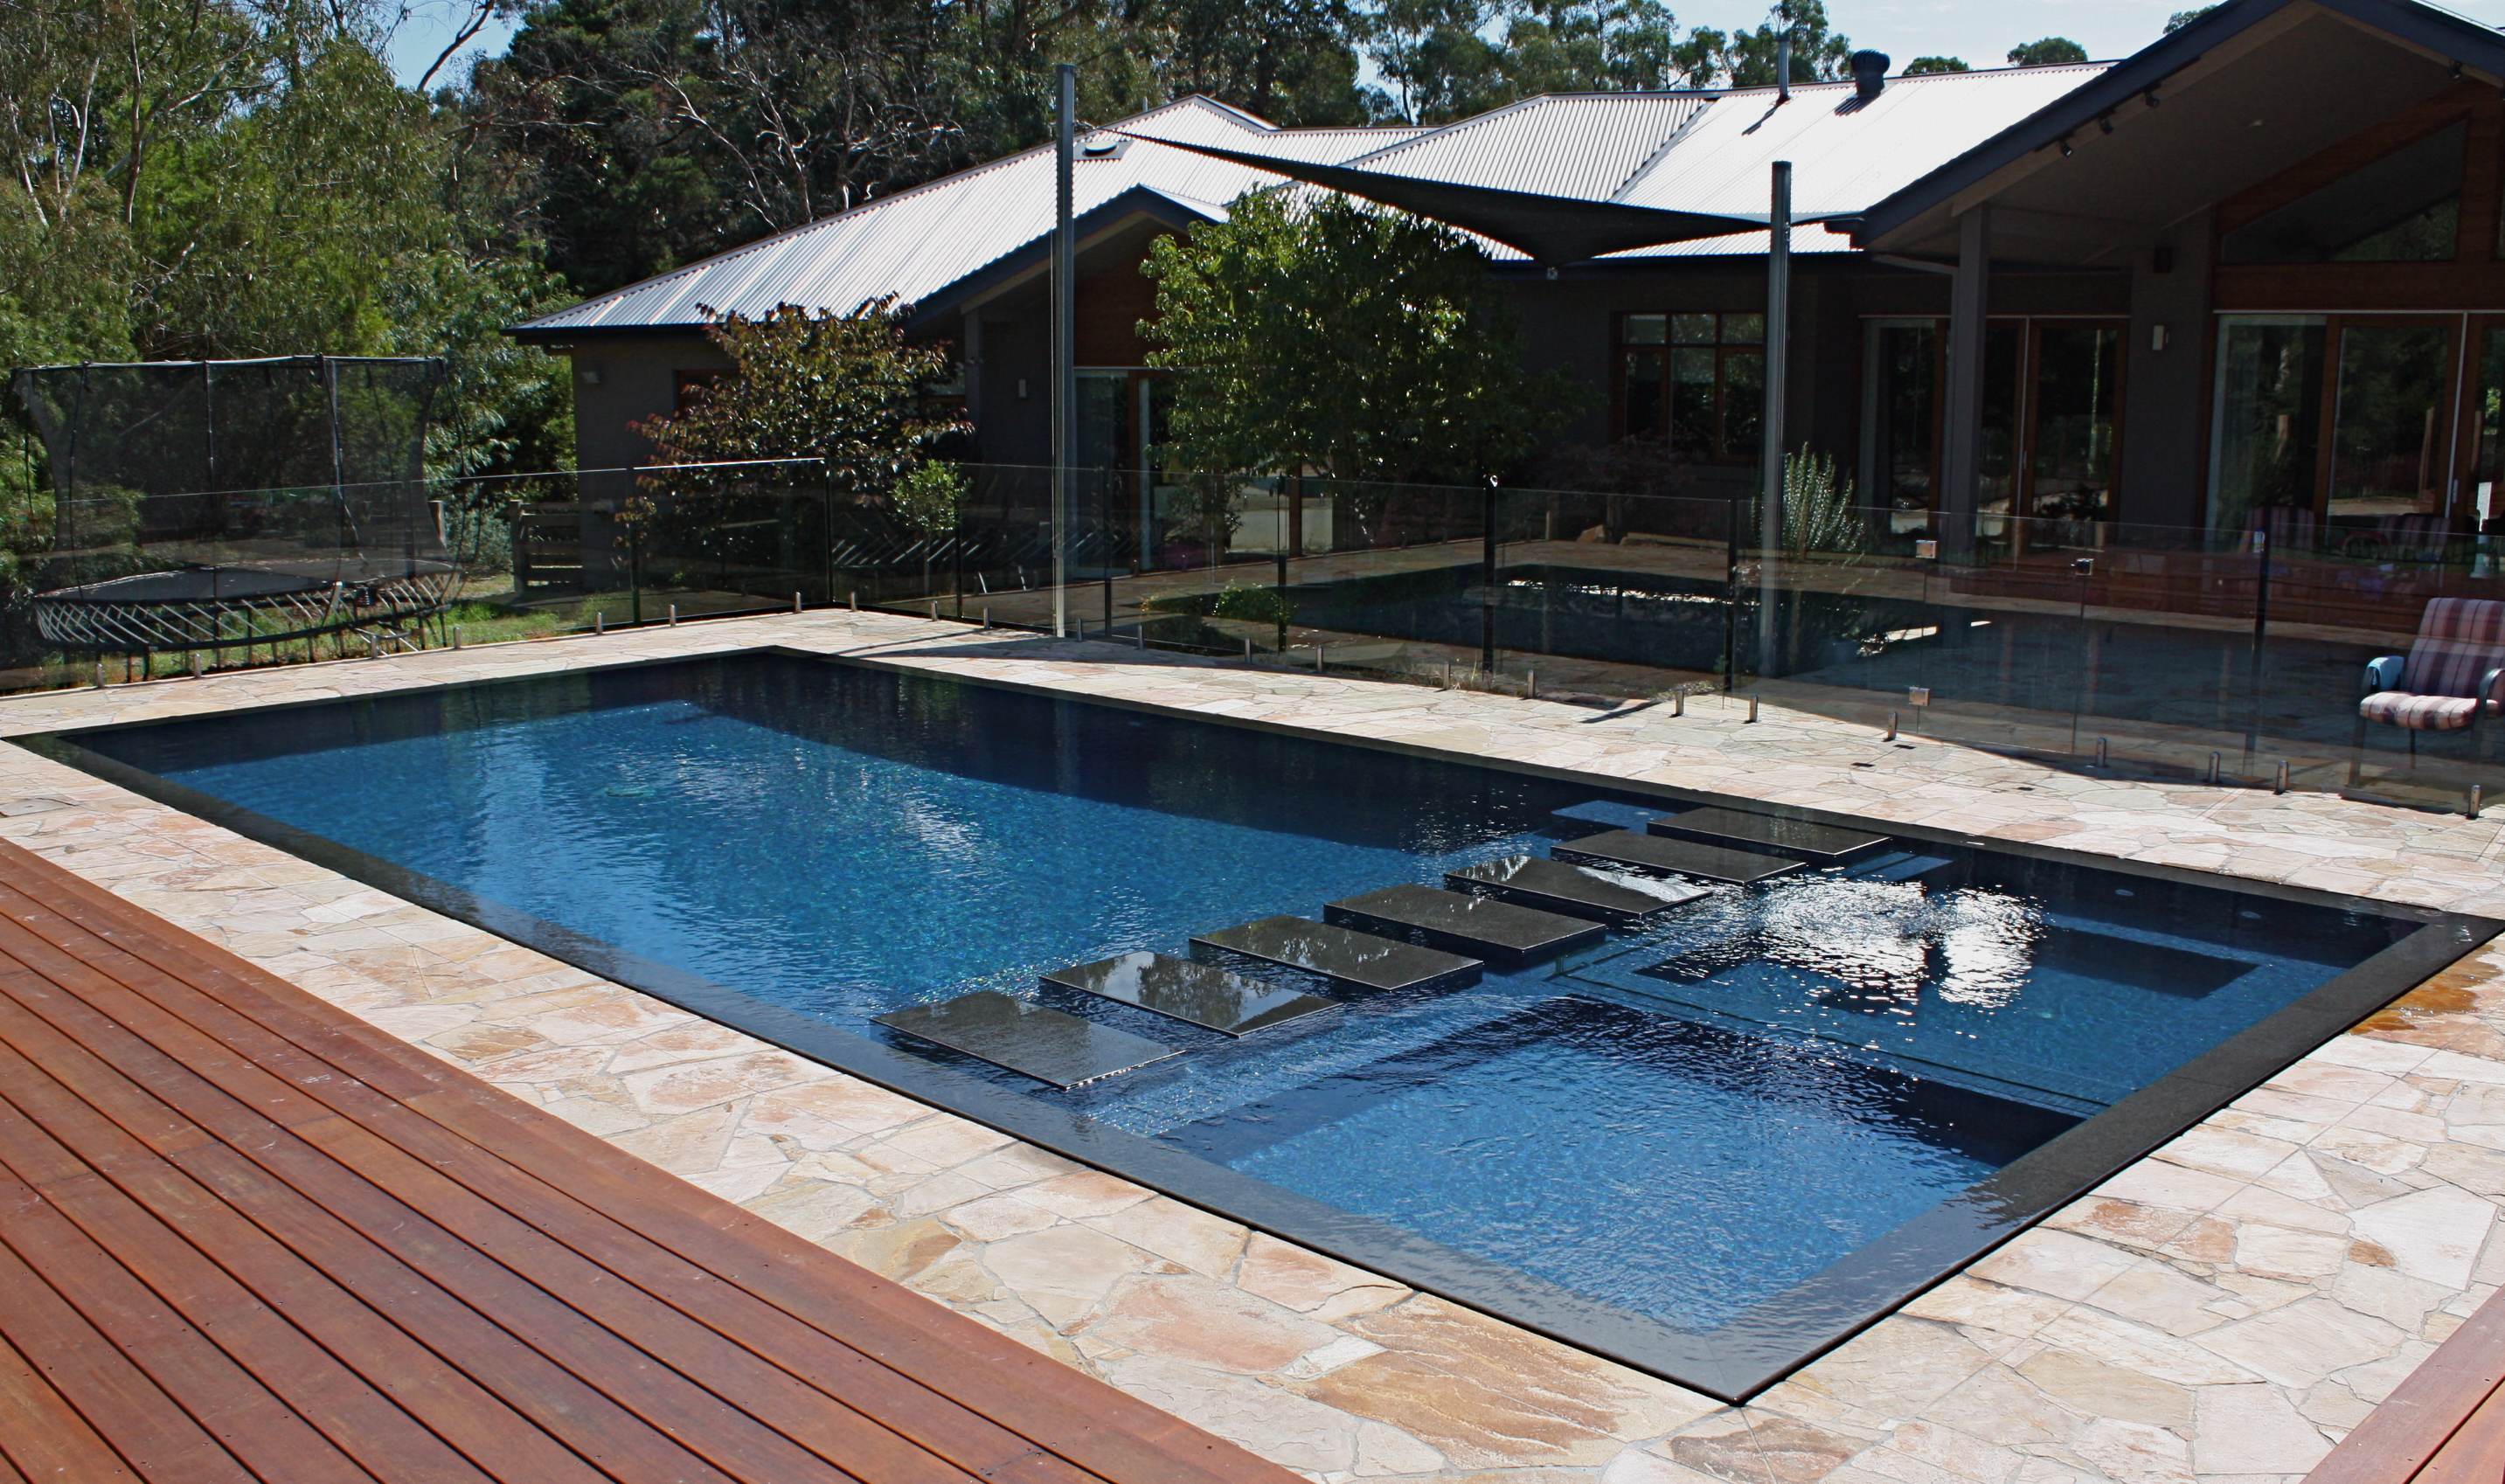 MINKE POOLS MELBOURNE CONCRETE SWIMMING POOL DESIGN AND CONSTRUCTION